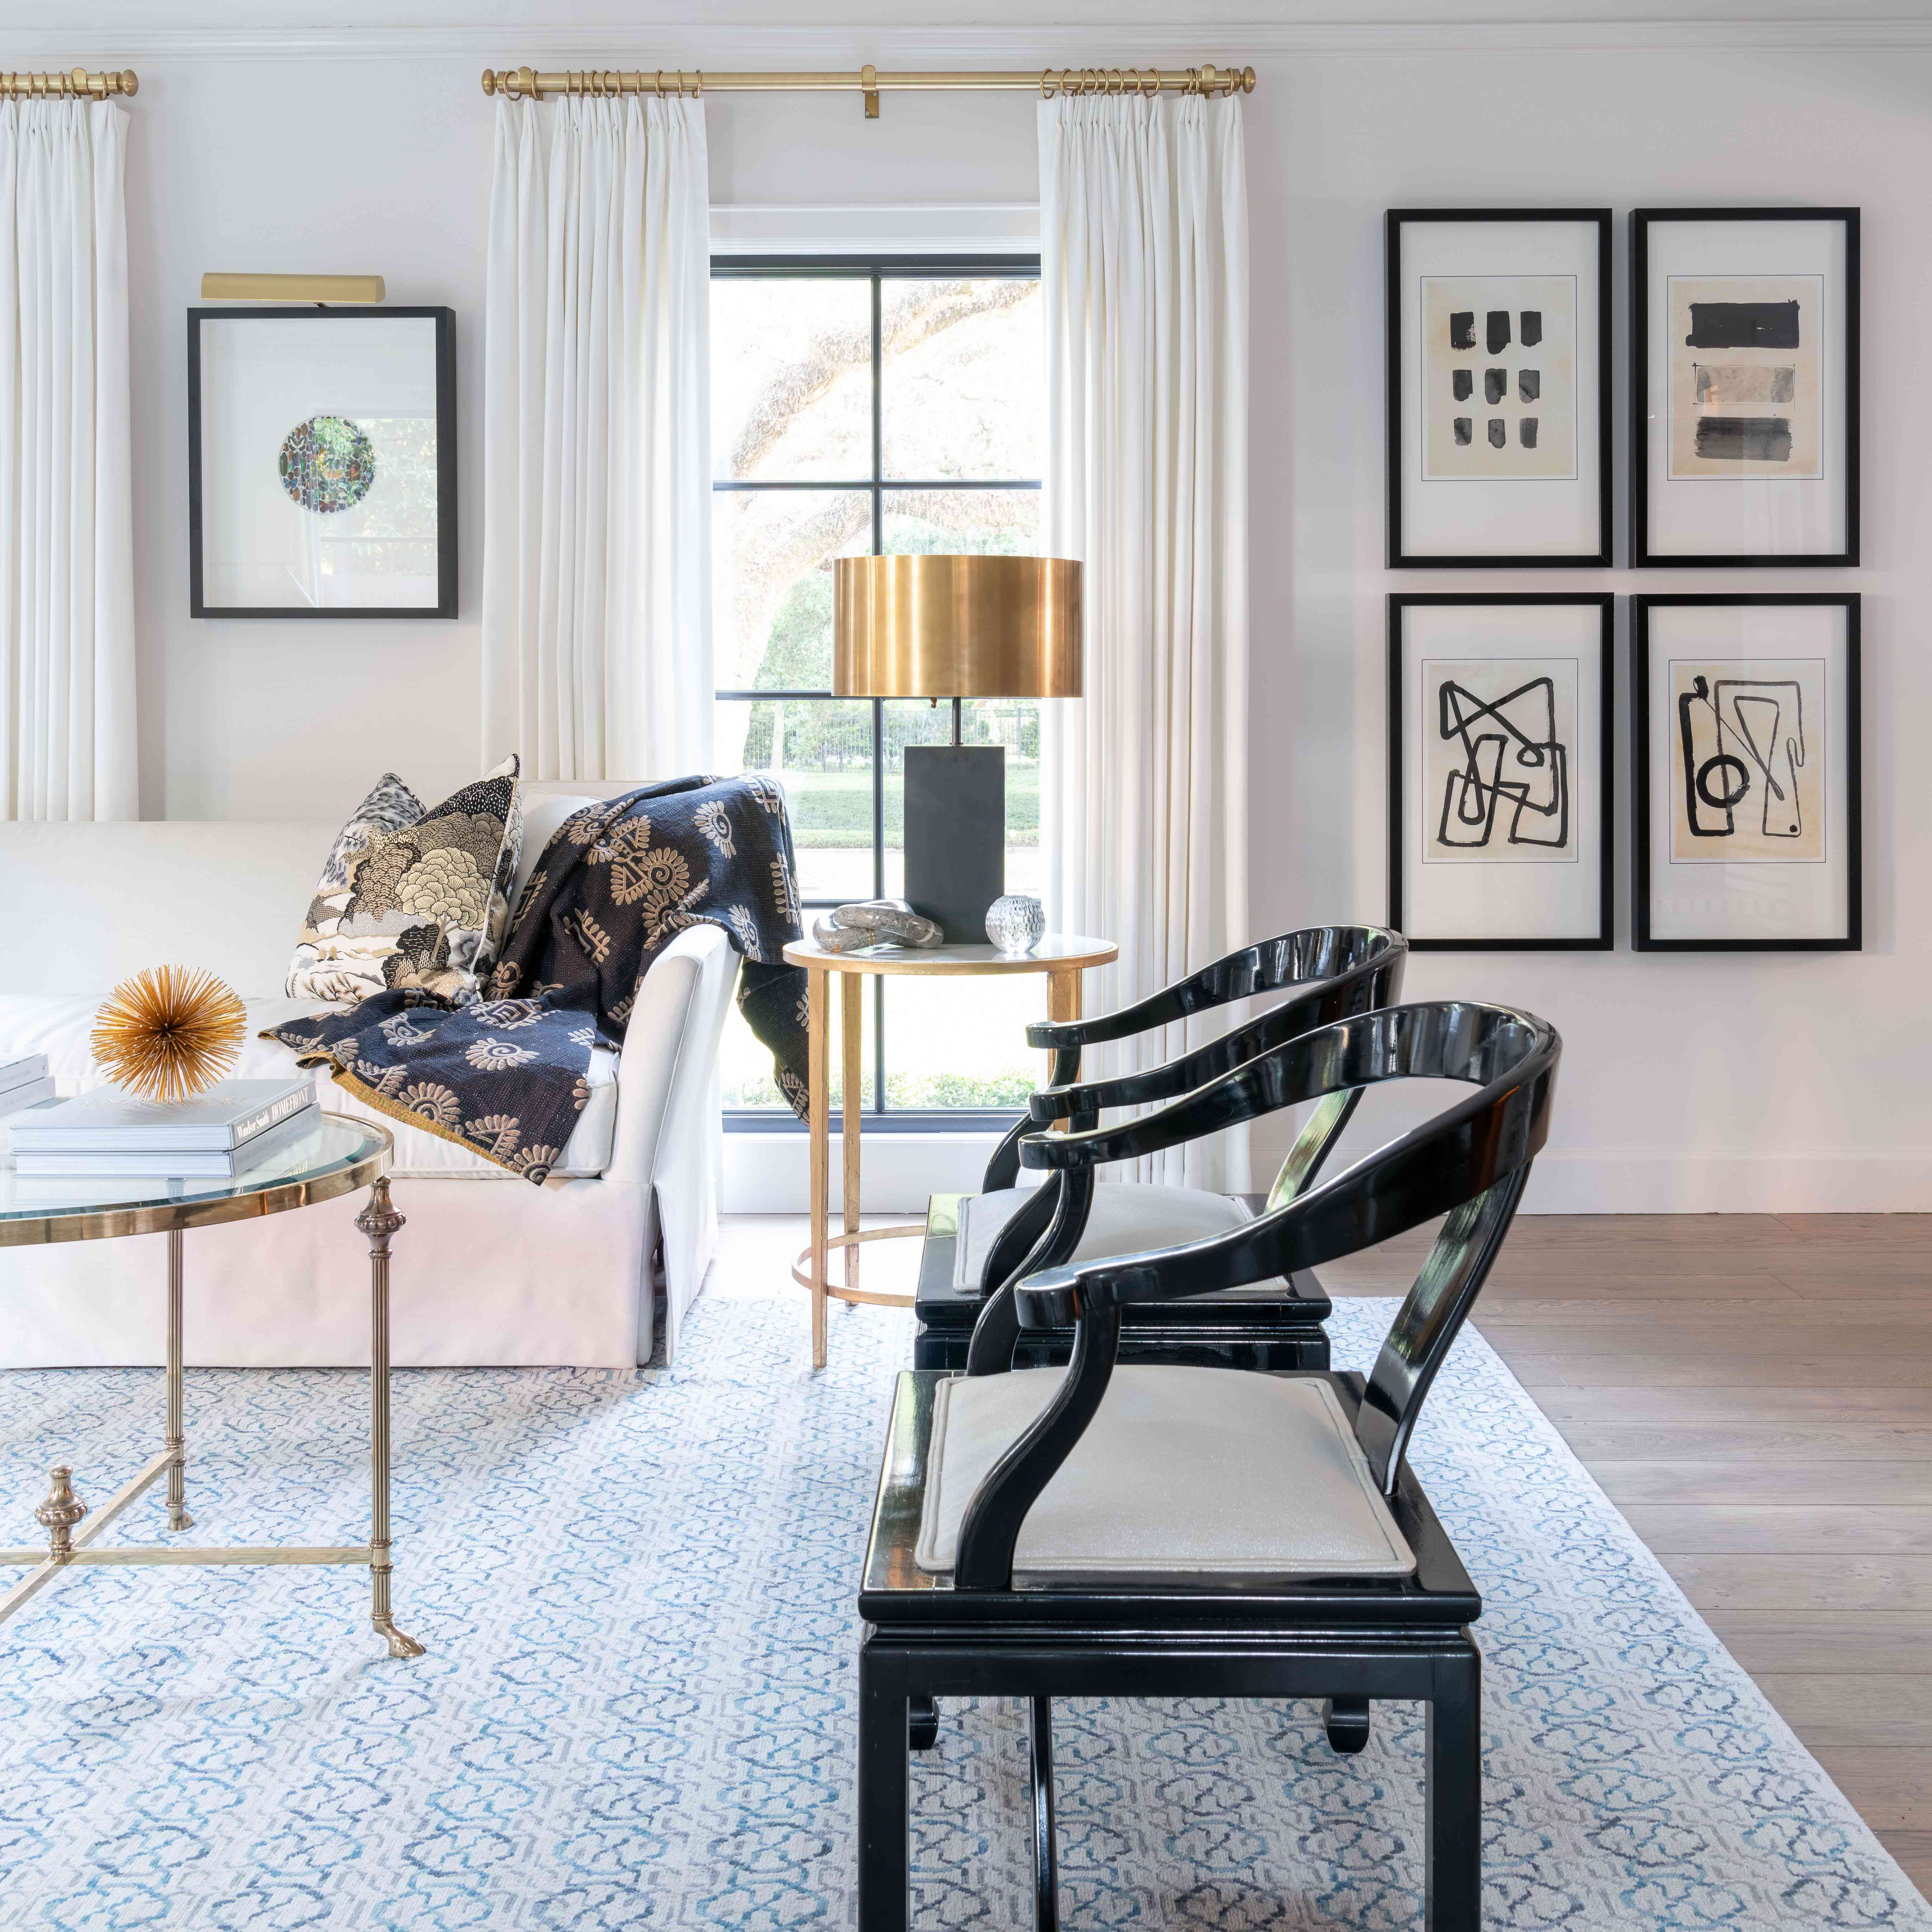 black accent chairs adorn this living room with minimalist, abstract art